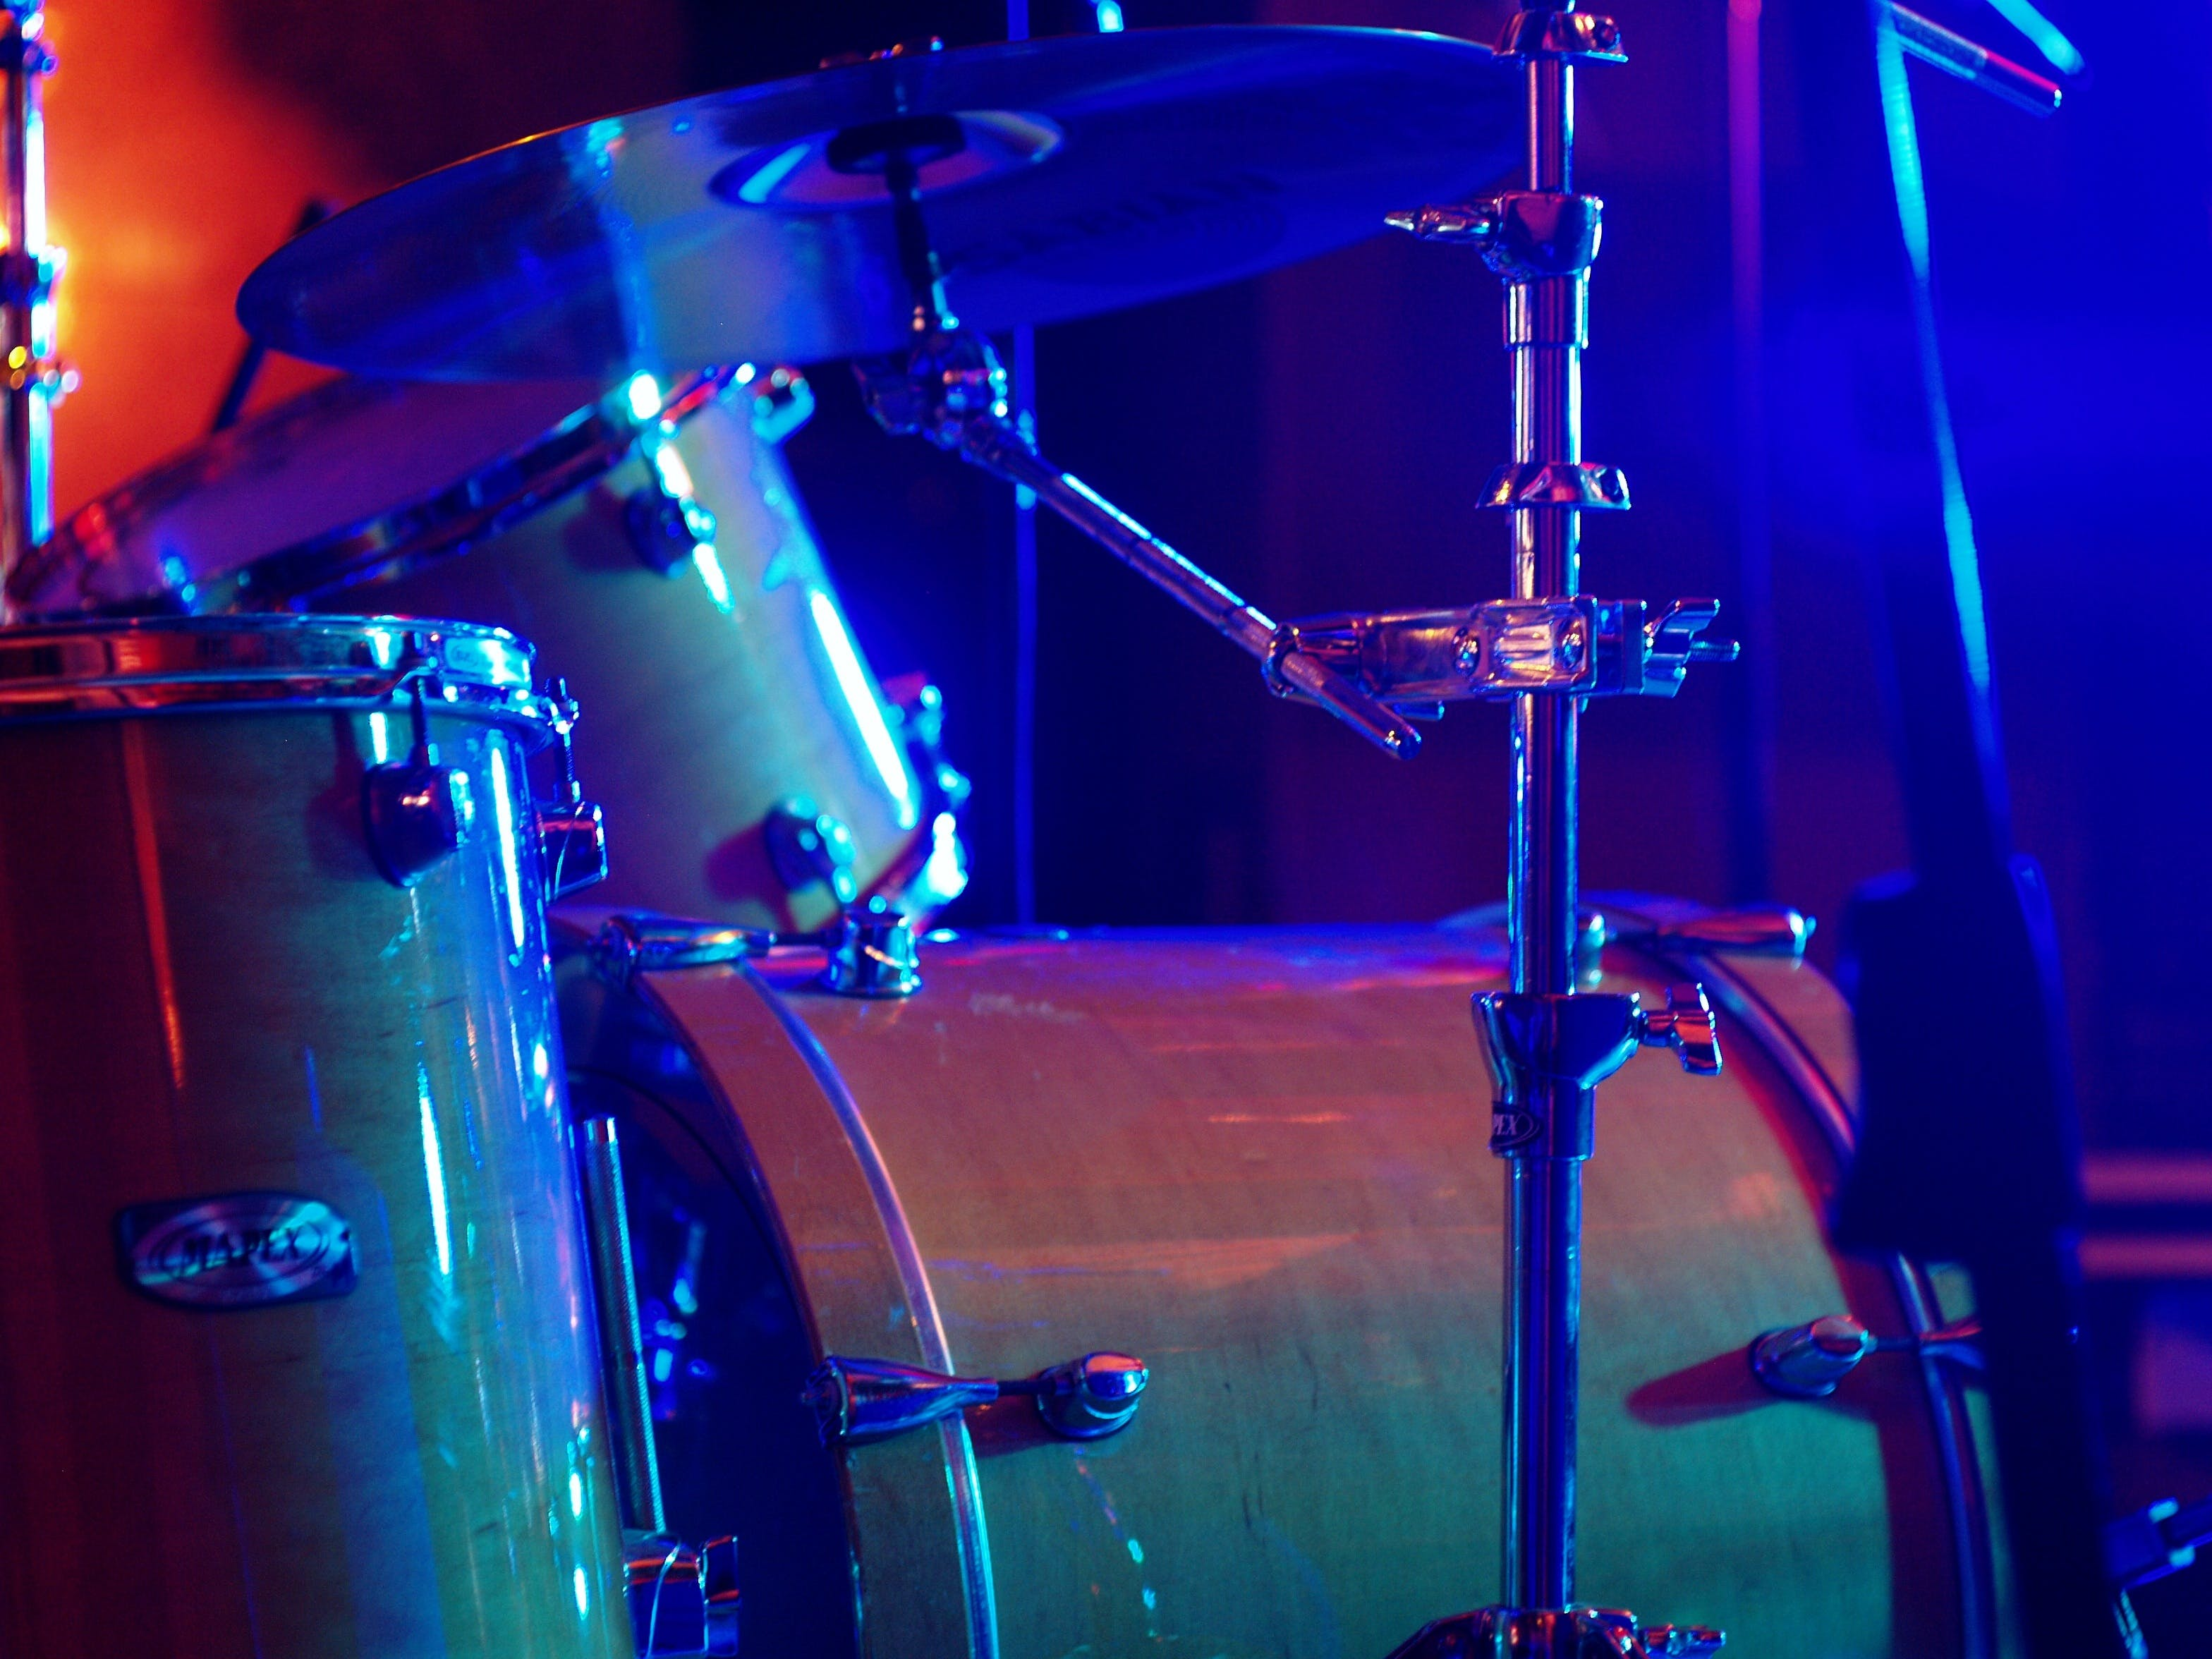 Shallow Focus Photography of Brown Drum Set